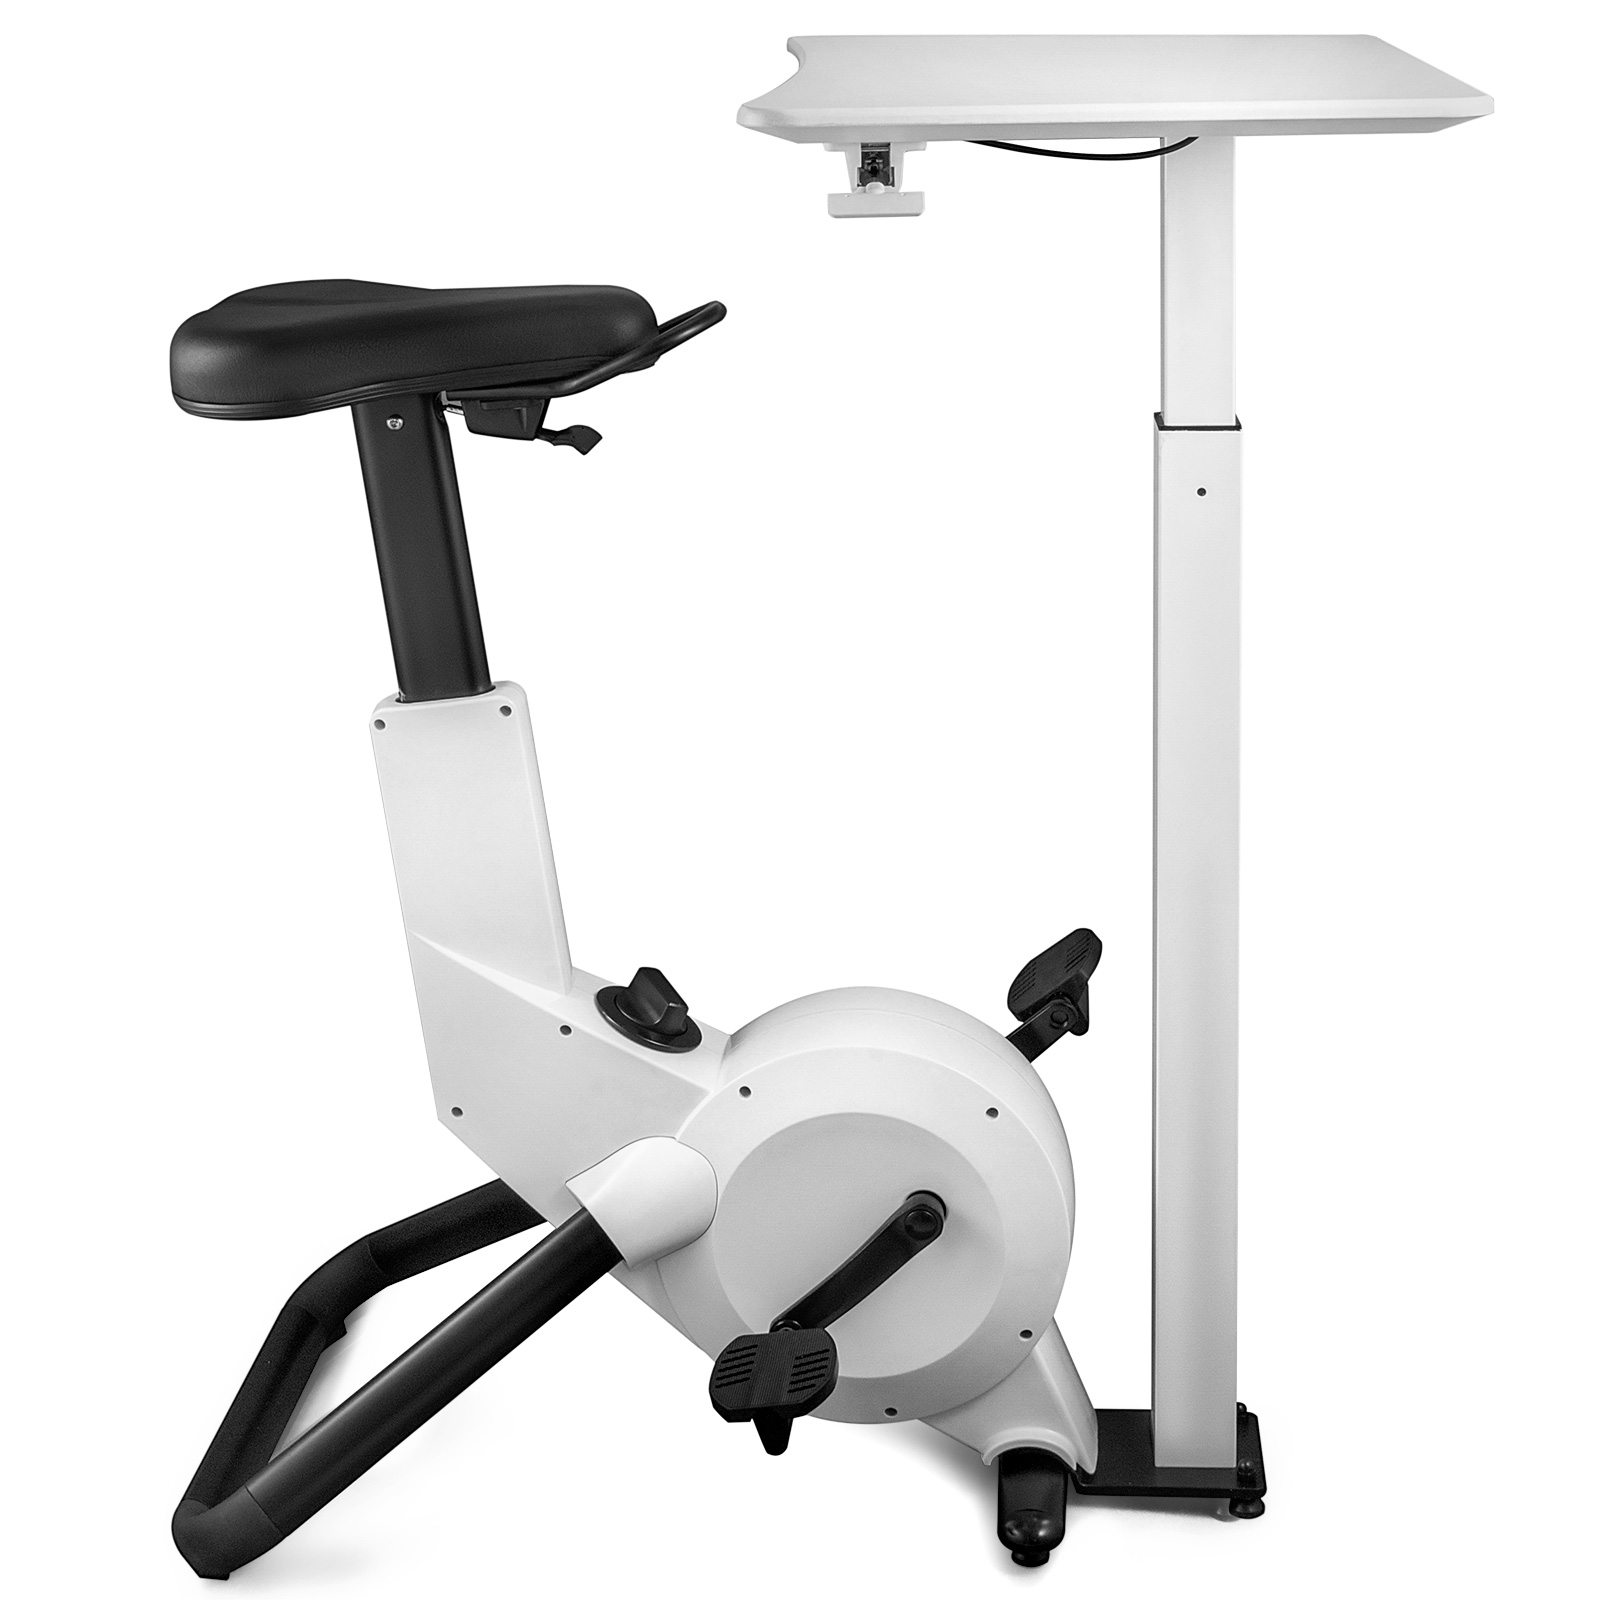 Multi-style-Magnetic-Exercise-Bike-office-Bicycle-under-Desk-Fitness-Cardio miniature 119